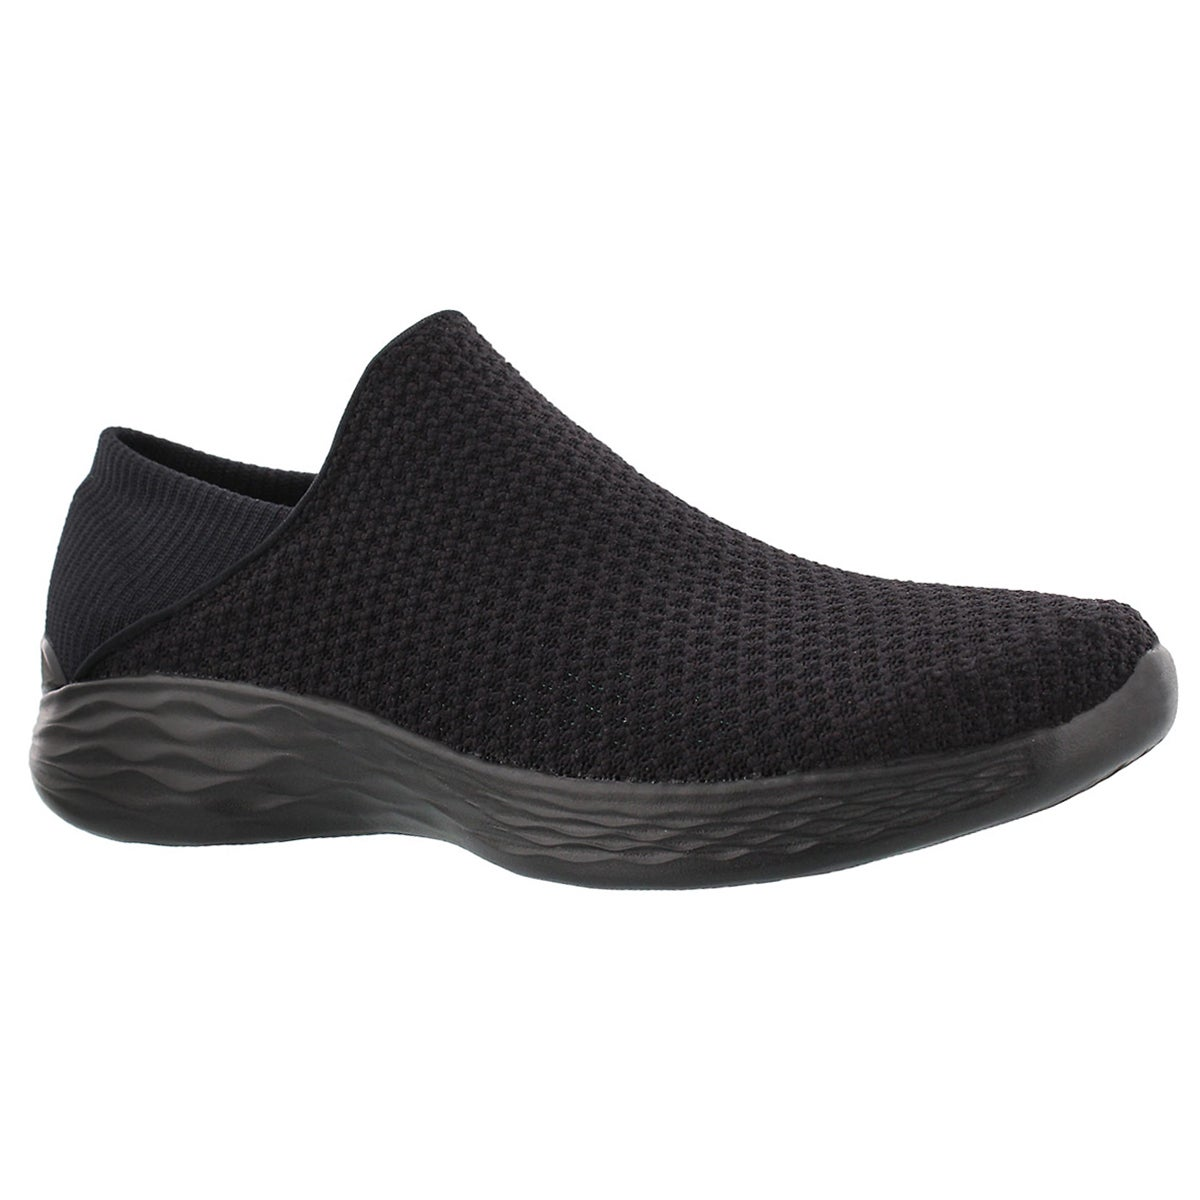 Lds You black slip on walking shoe